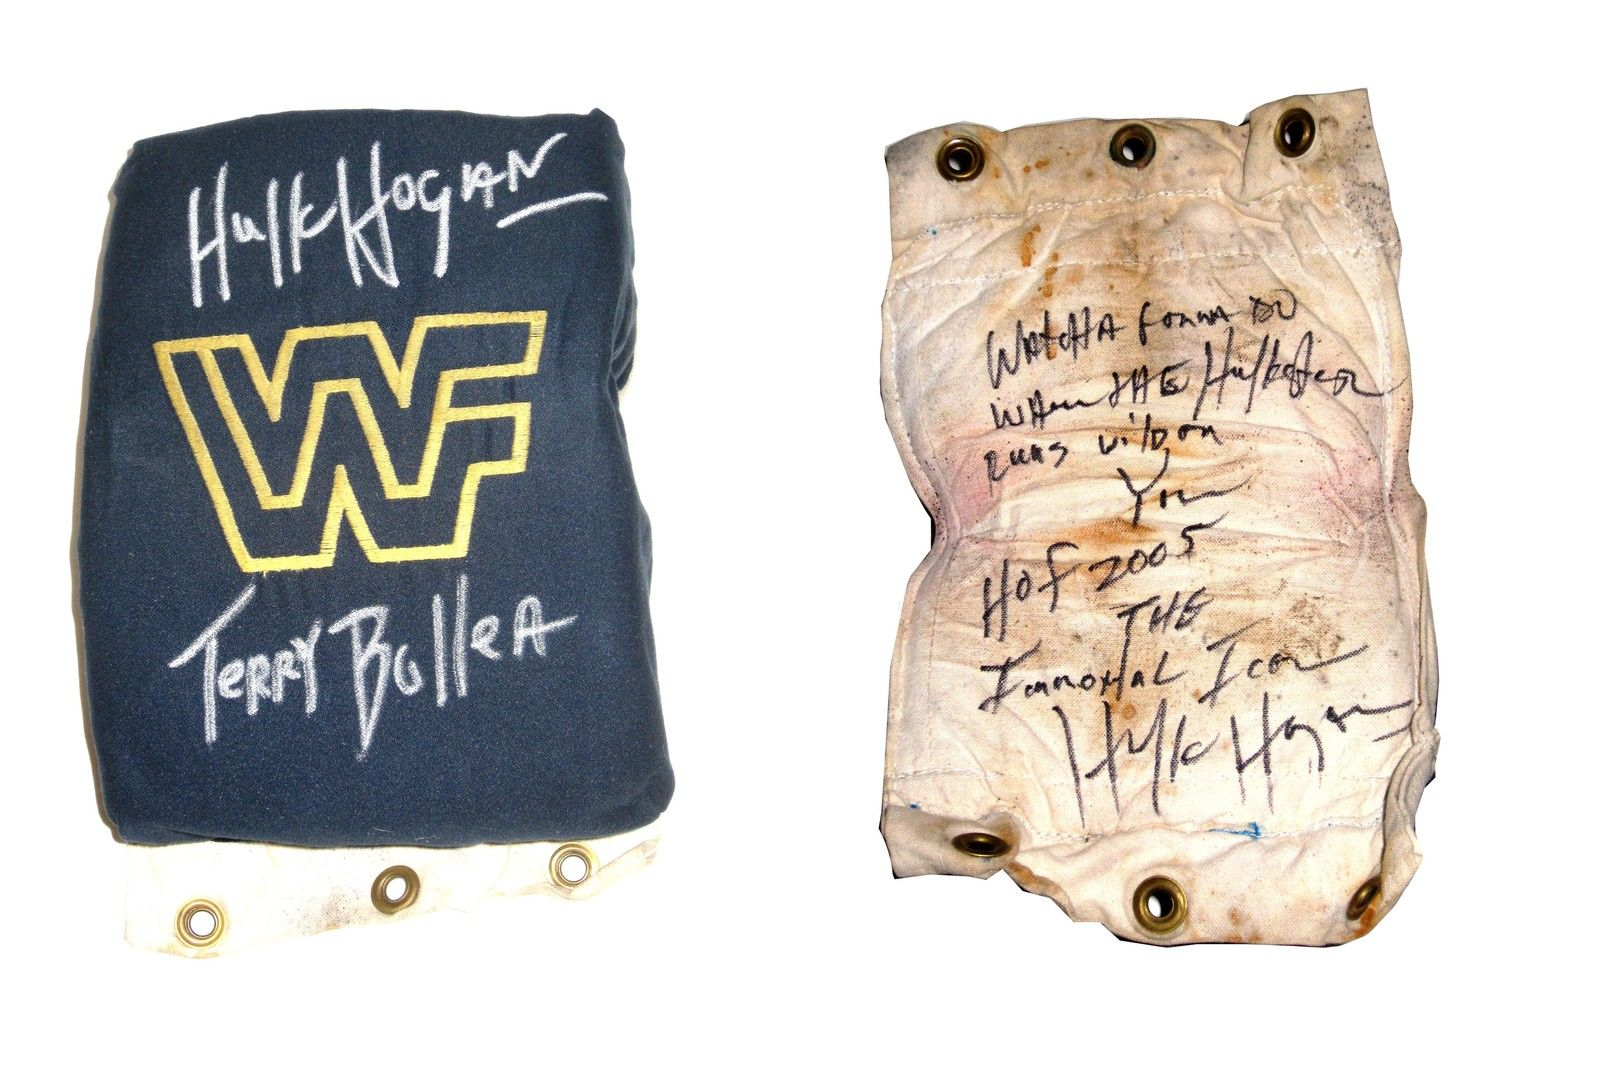 Hulk Hogan signed turnbuckle 1